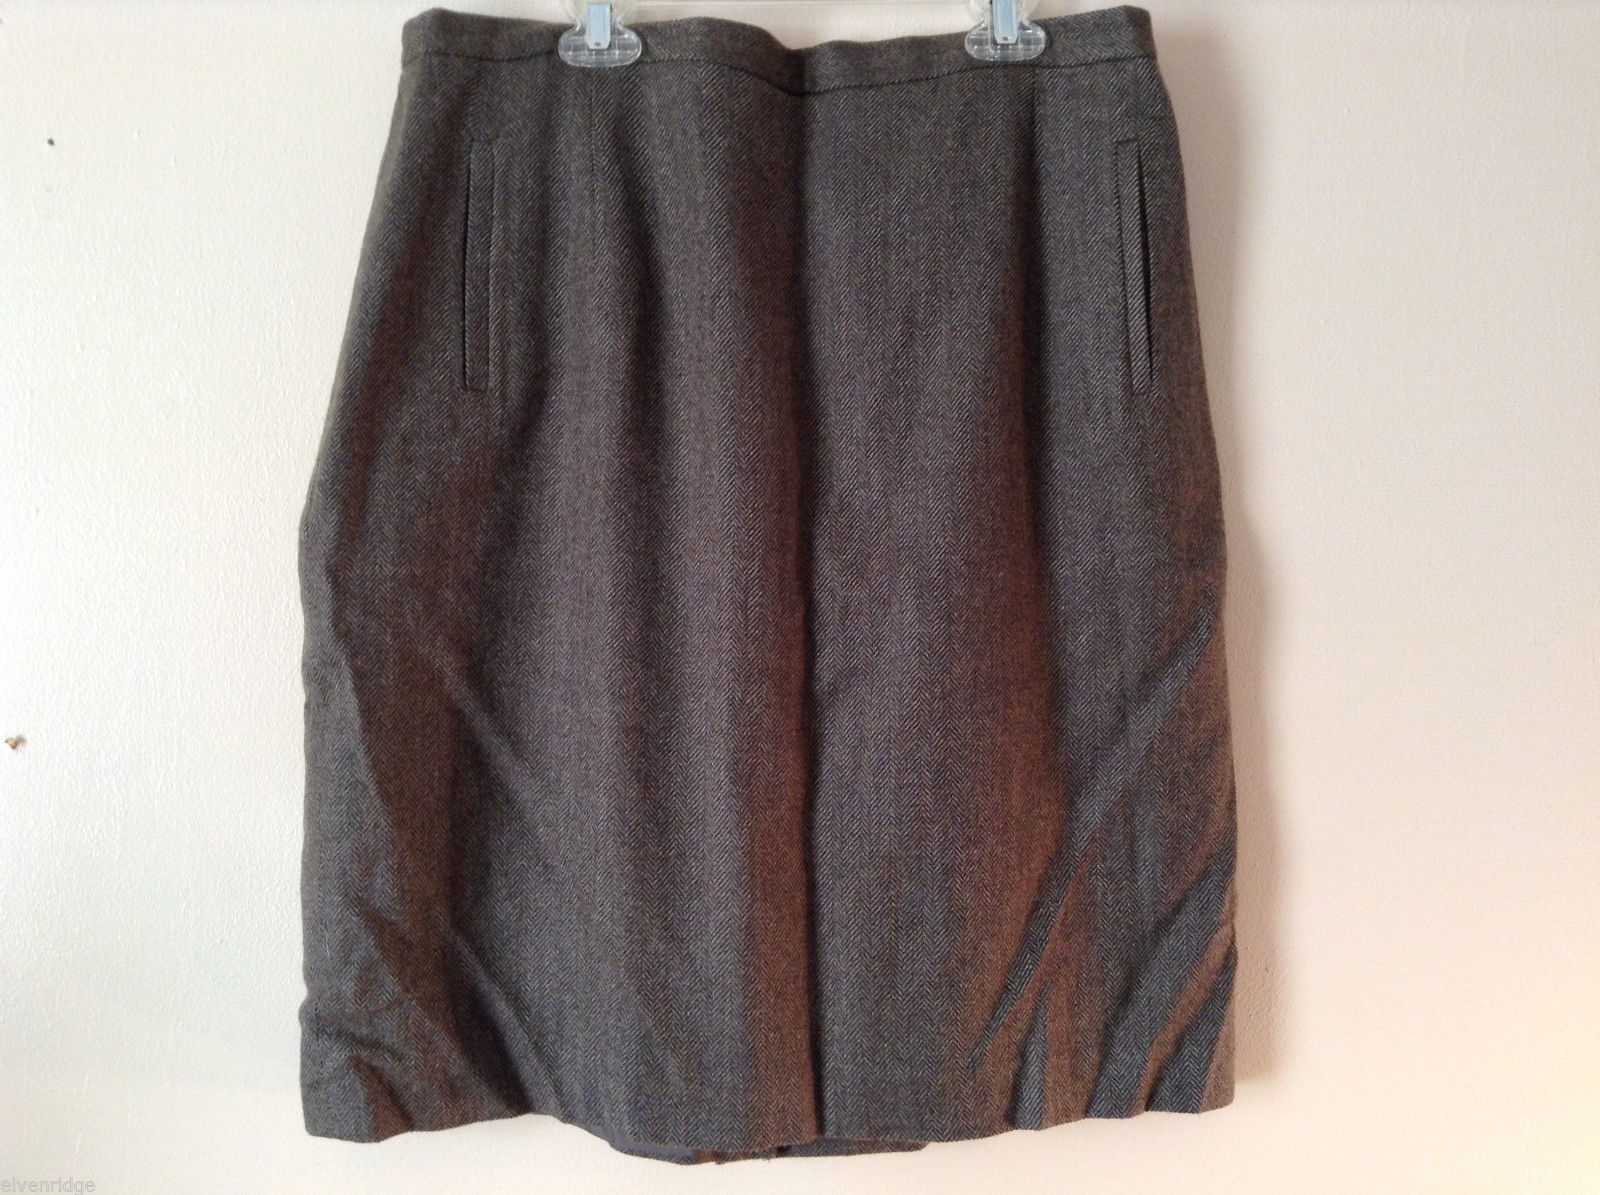 Laura Scott Women's Size 18 Straight Skirt Wool Blend Herringbone Tweed Pattern